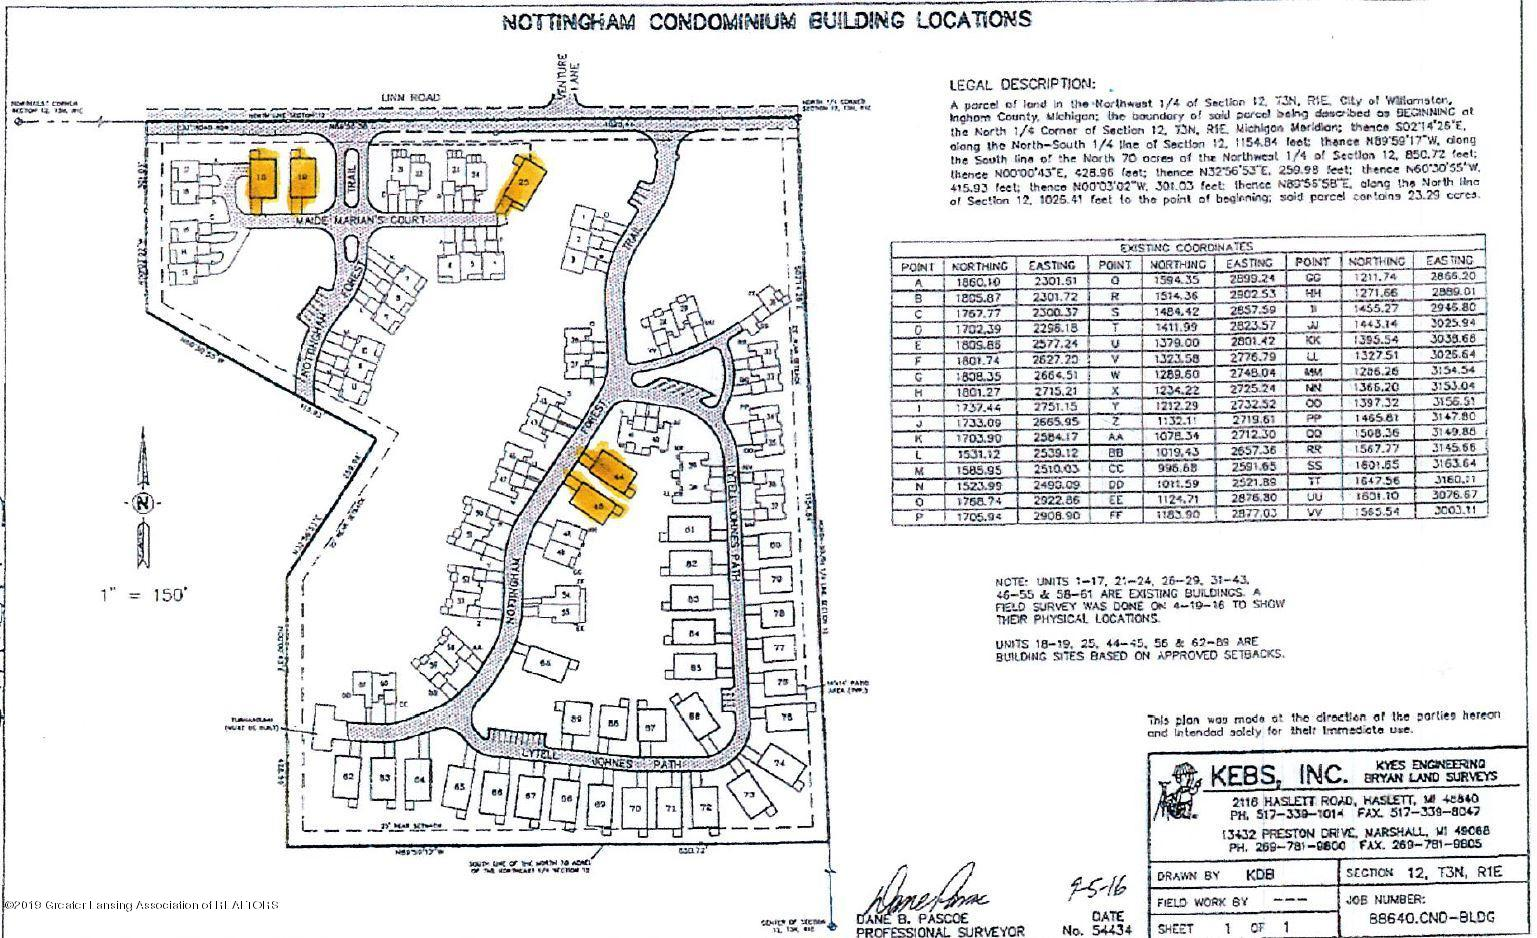 1516 Nottingham Forest - Nottingham Condominium Site Plan - 1